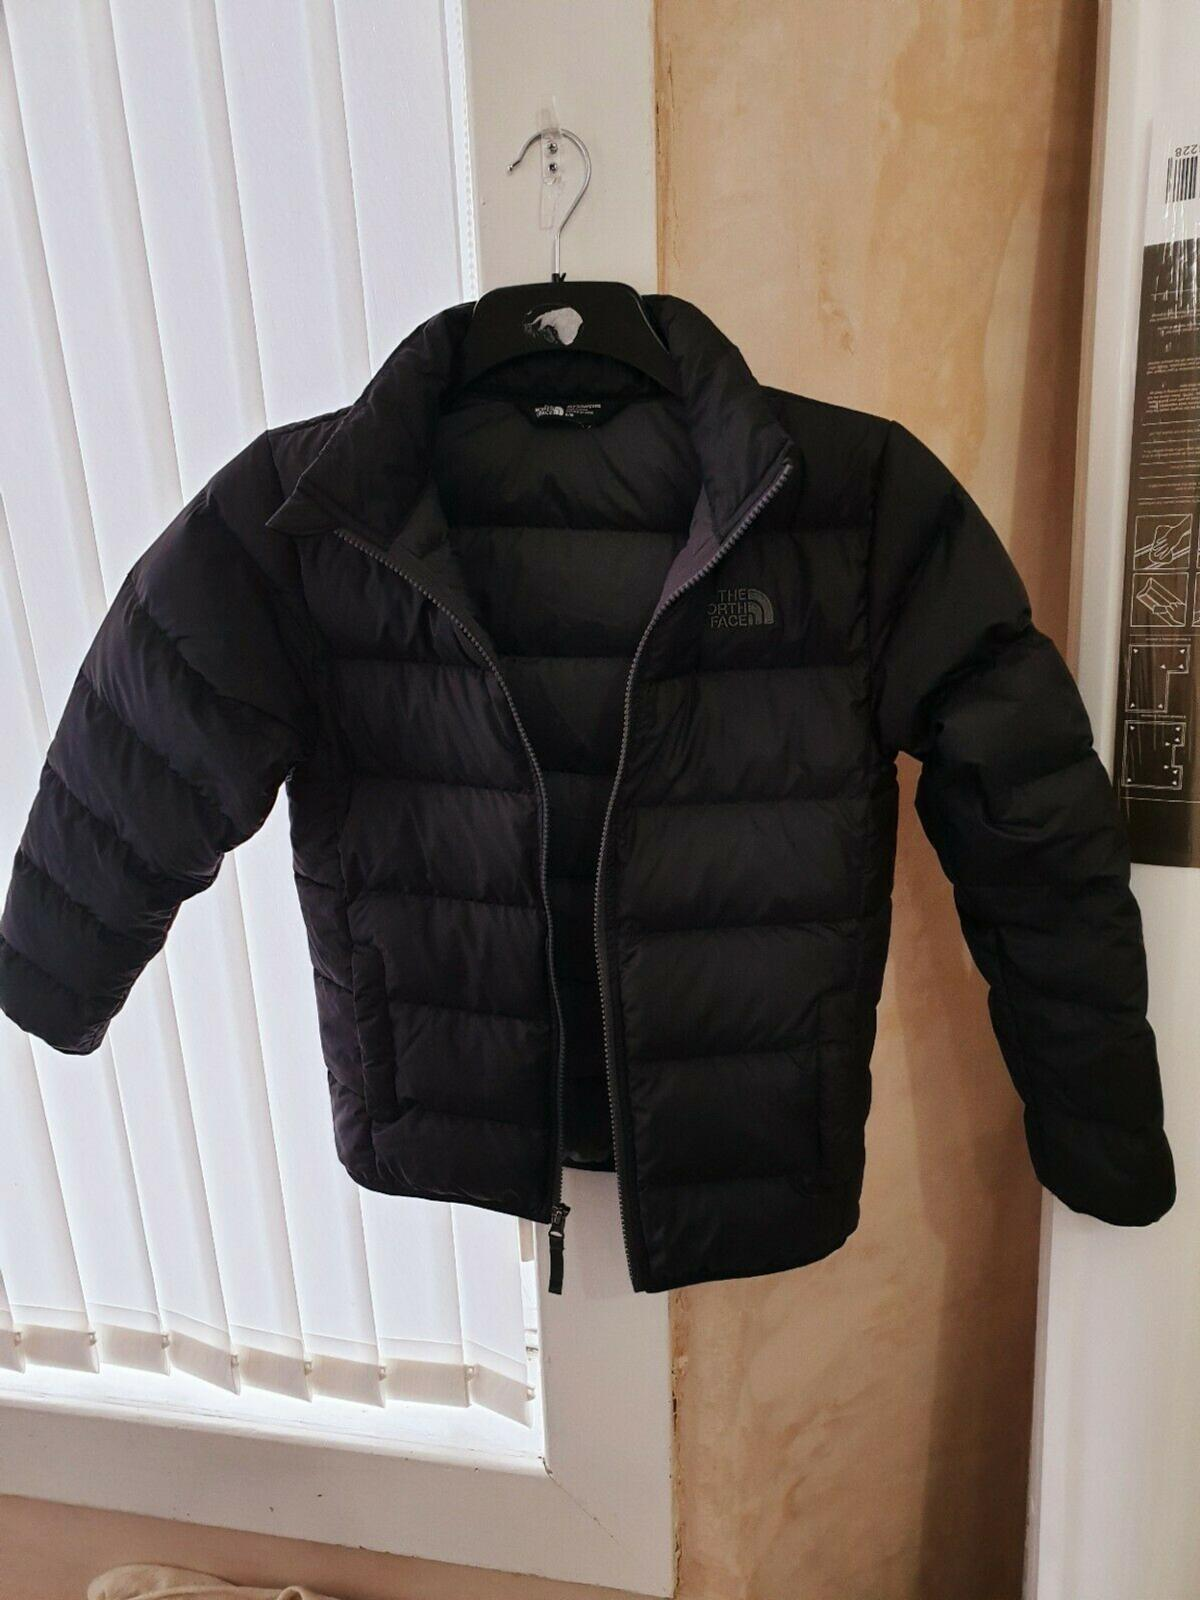 a0859a4cb The North Face 550 Down Jacket, Boys Mediu. in G52 Glasgow for ...